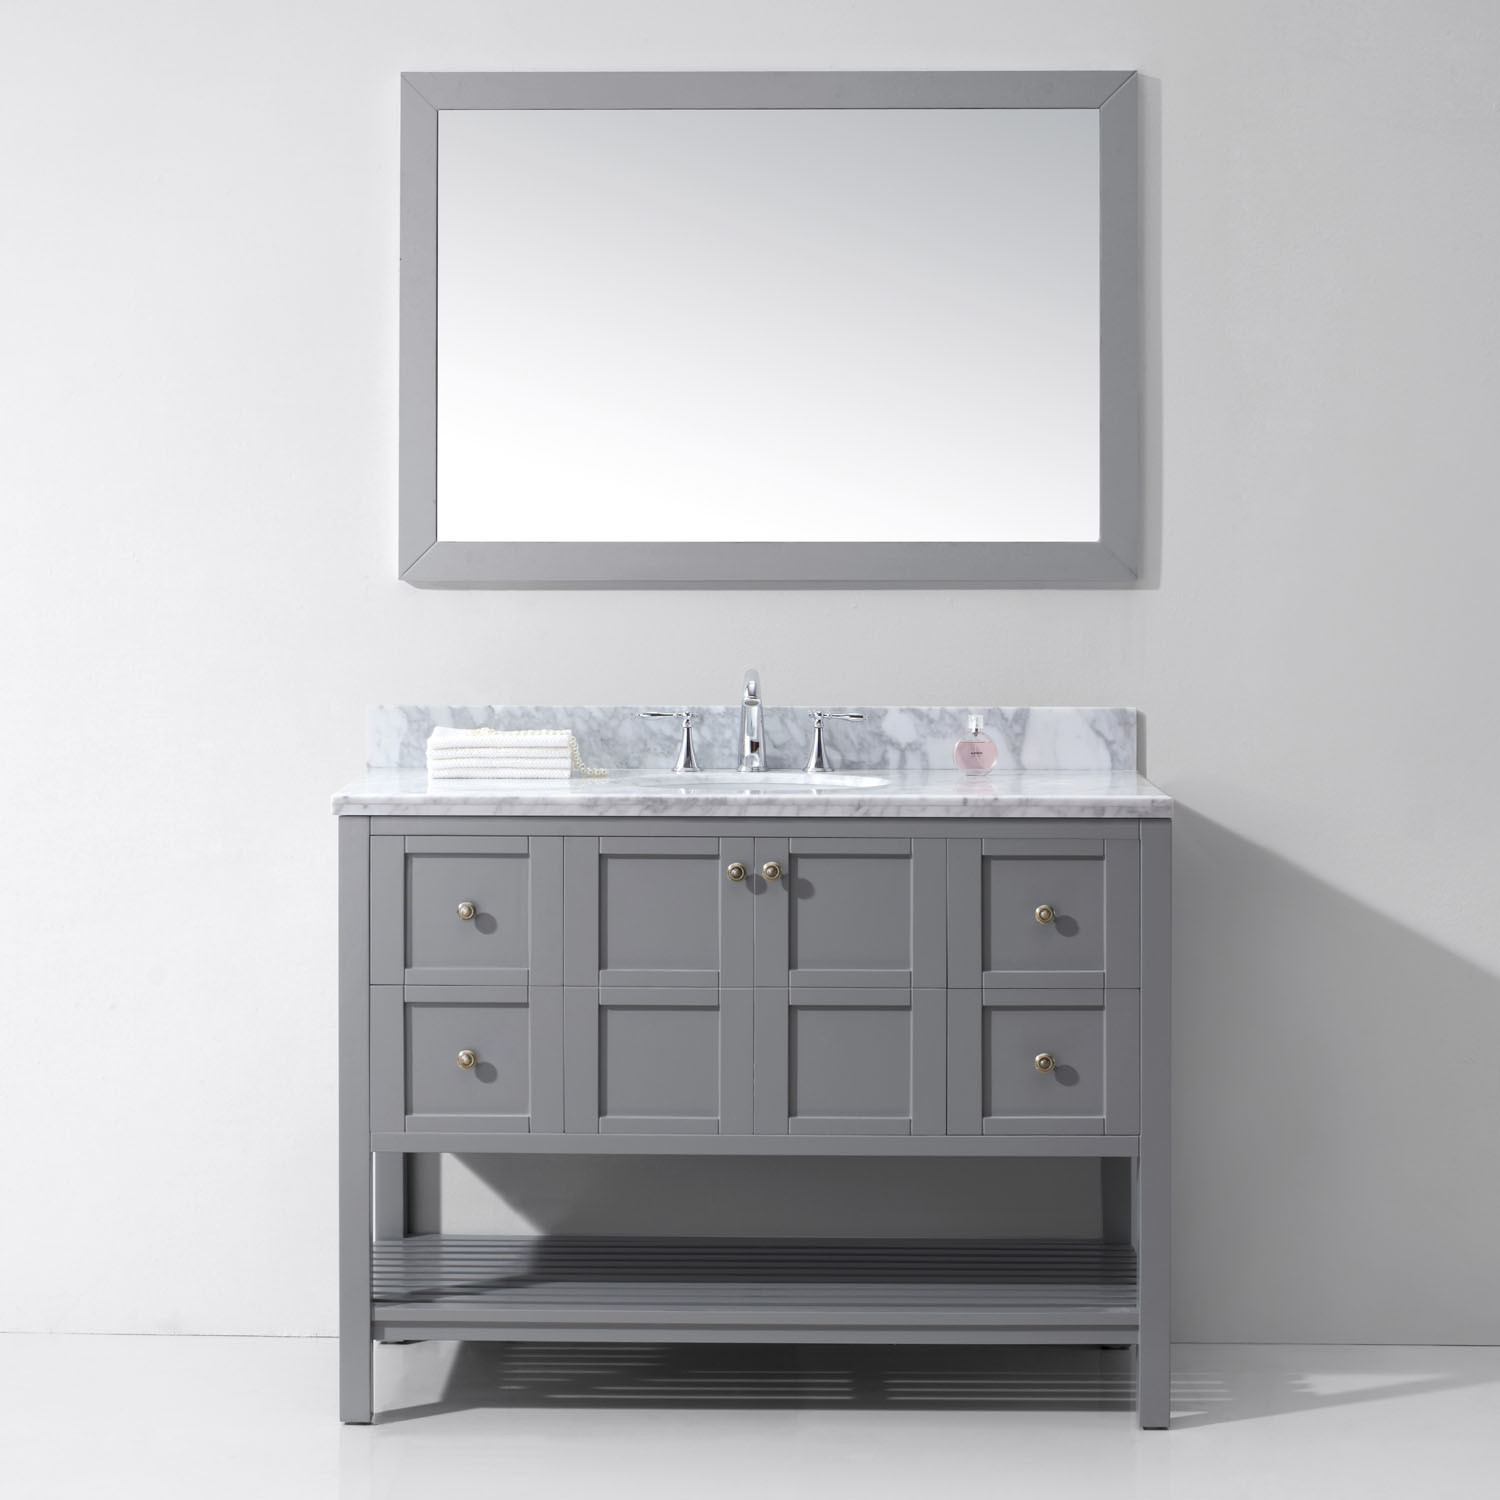 Virtu ES-30048-WMRO-GR Winterfell 48 Inch Single Bathroom Vanity Set In Grey